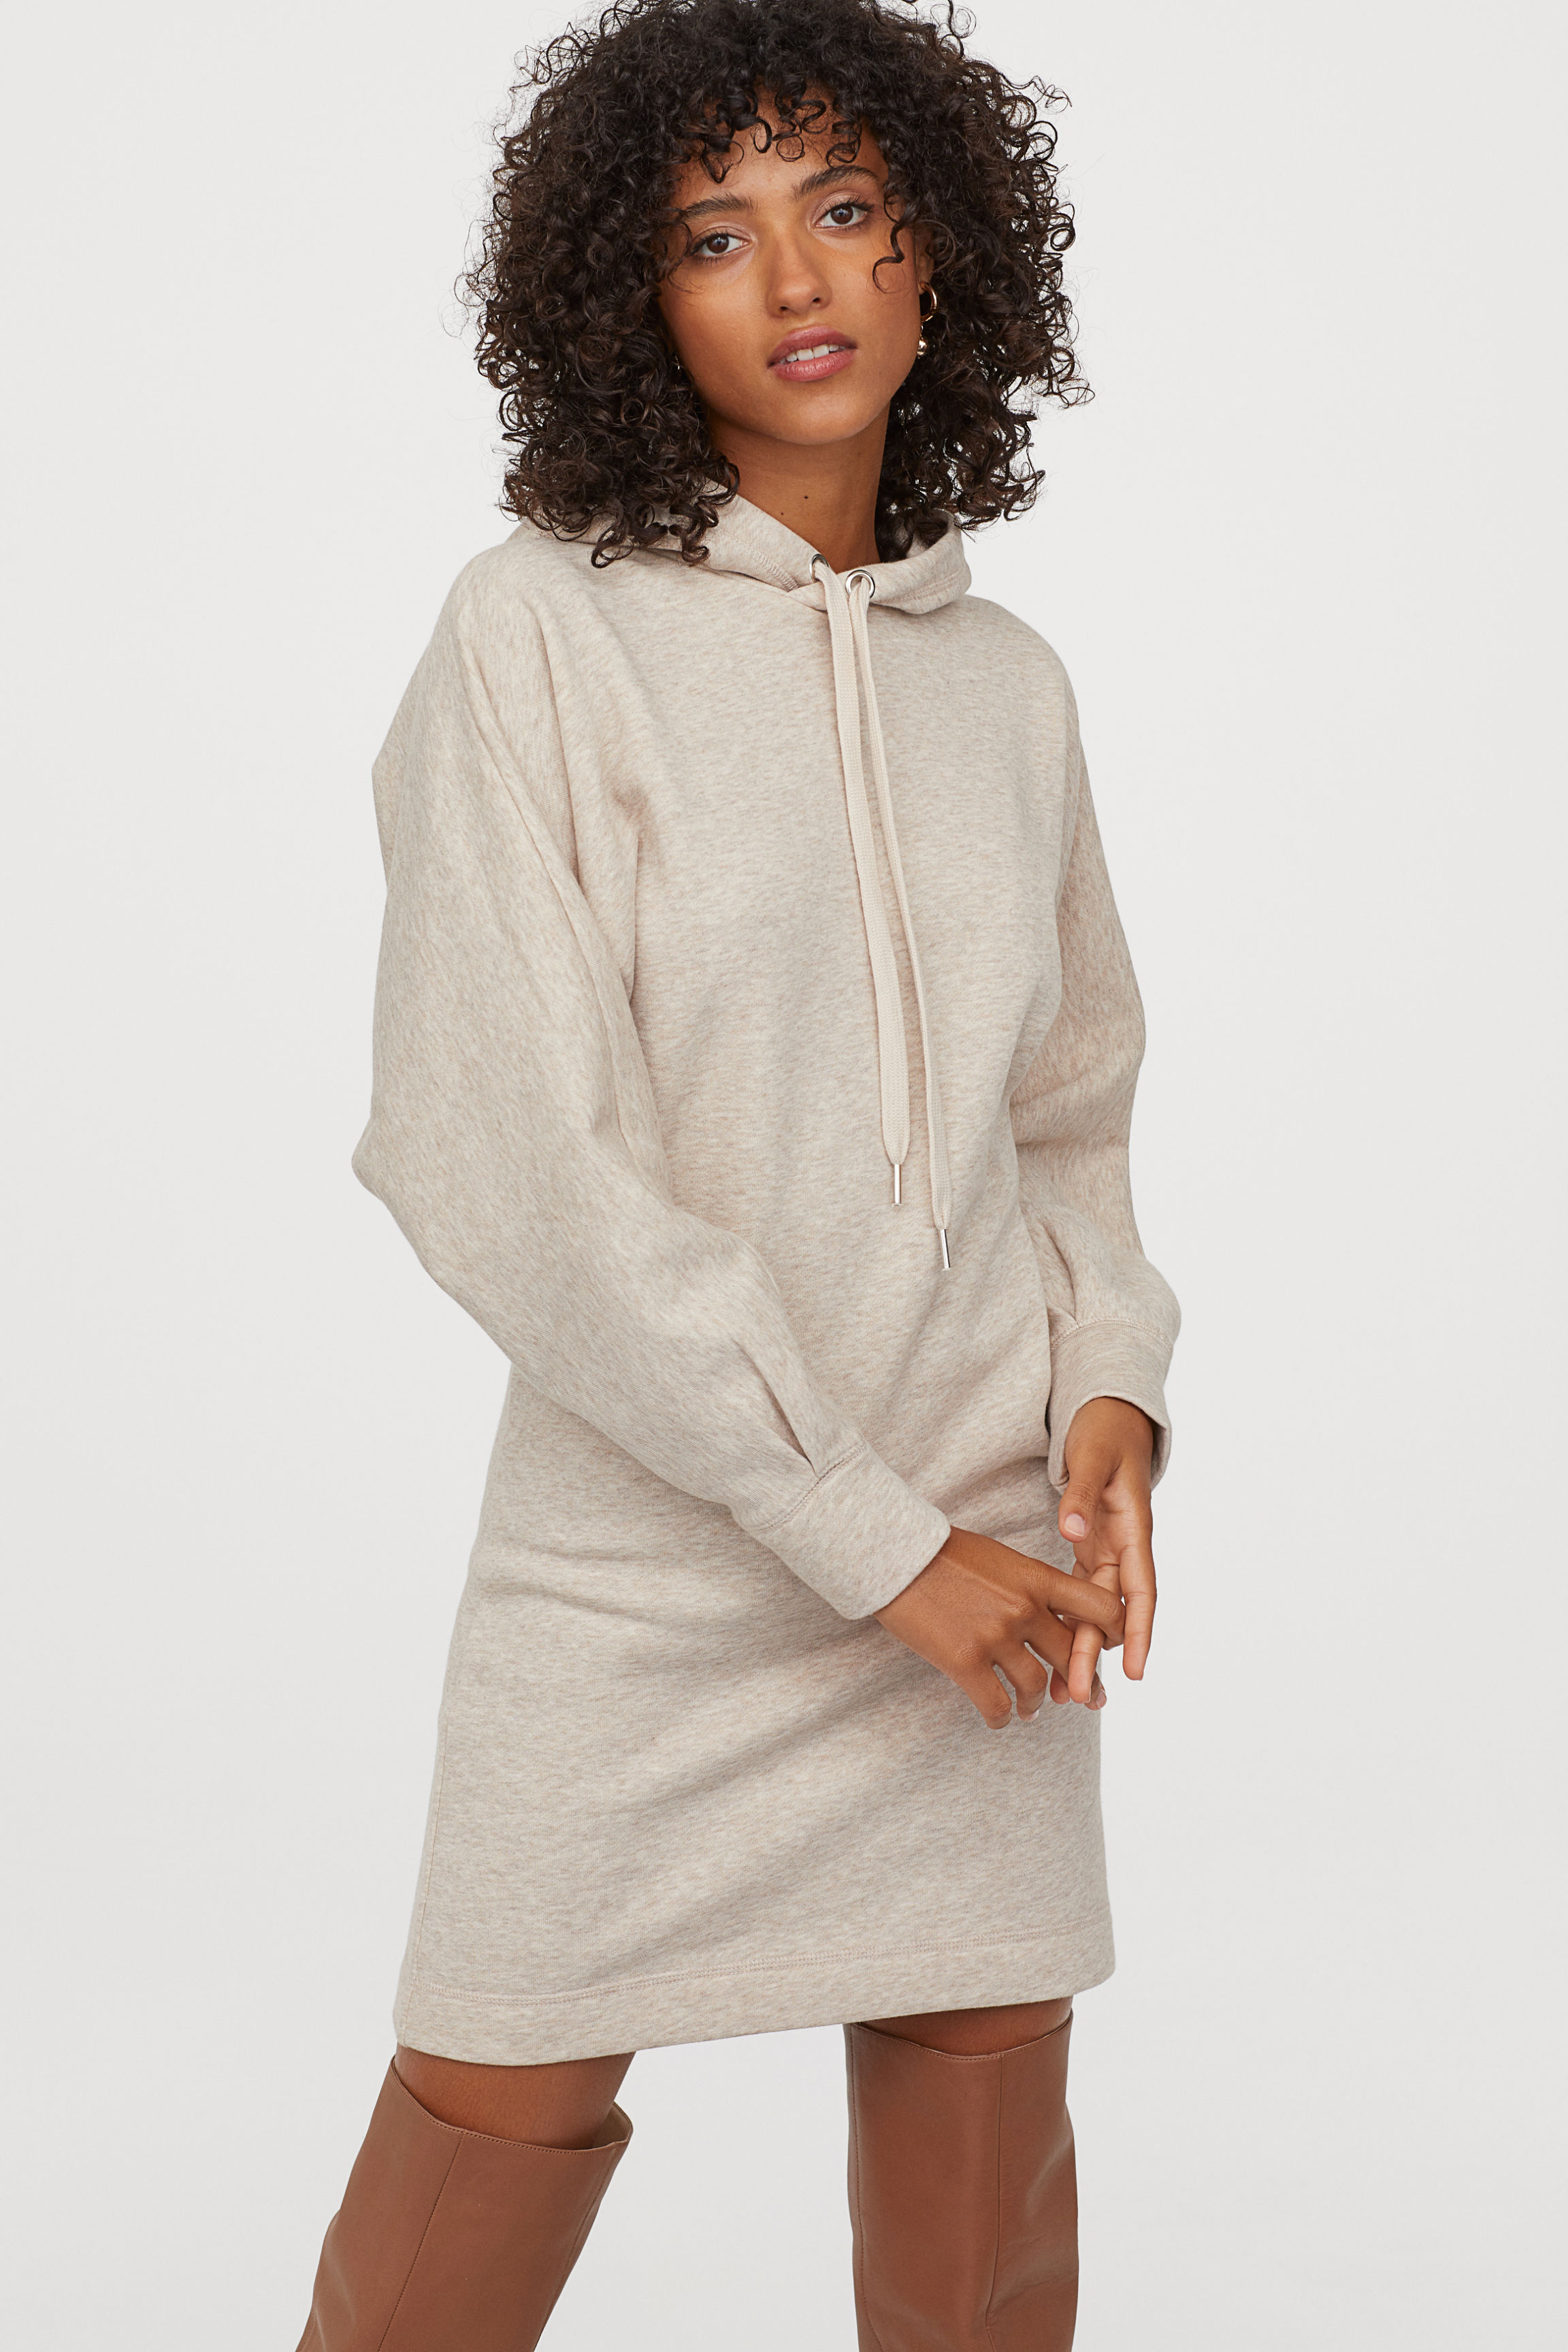 Long Hooded Sweatshirt - Light beige melange - Ladies | H&M US